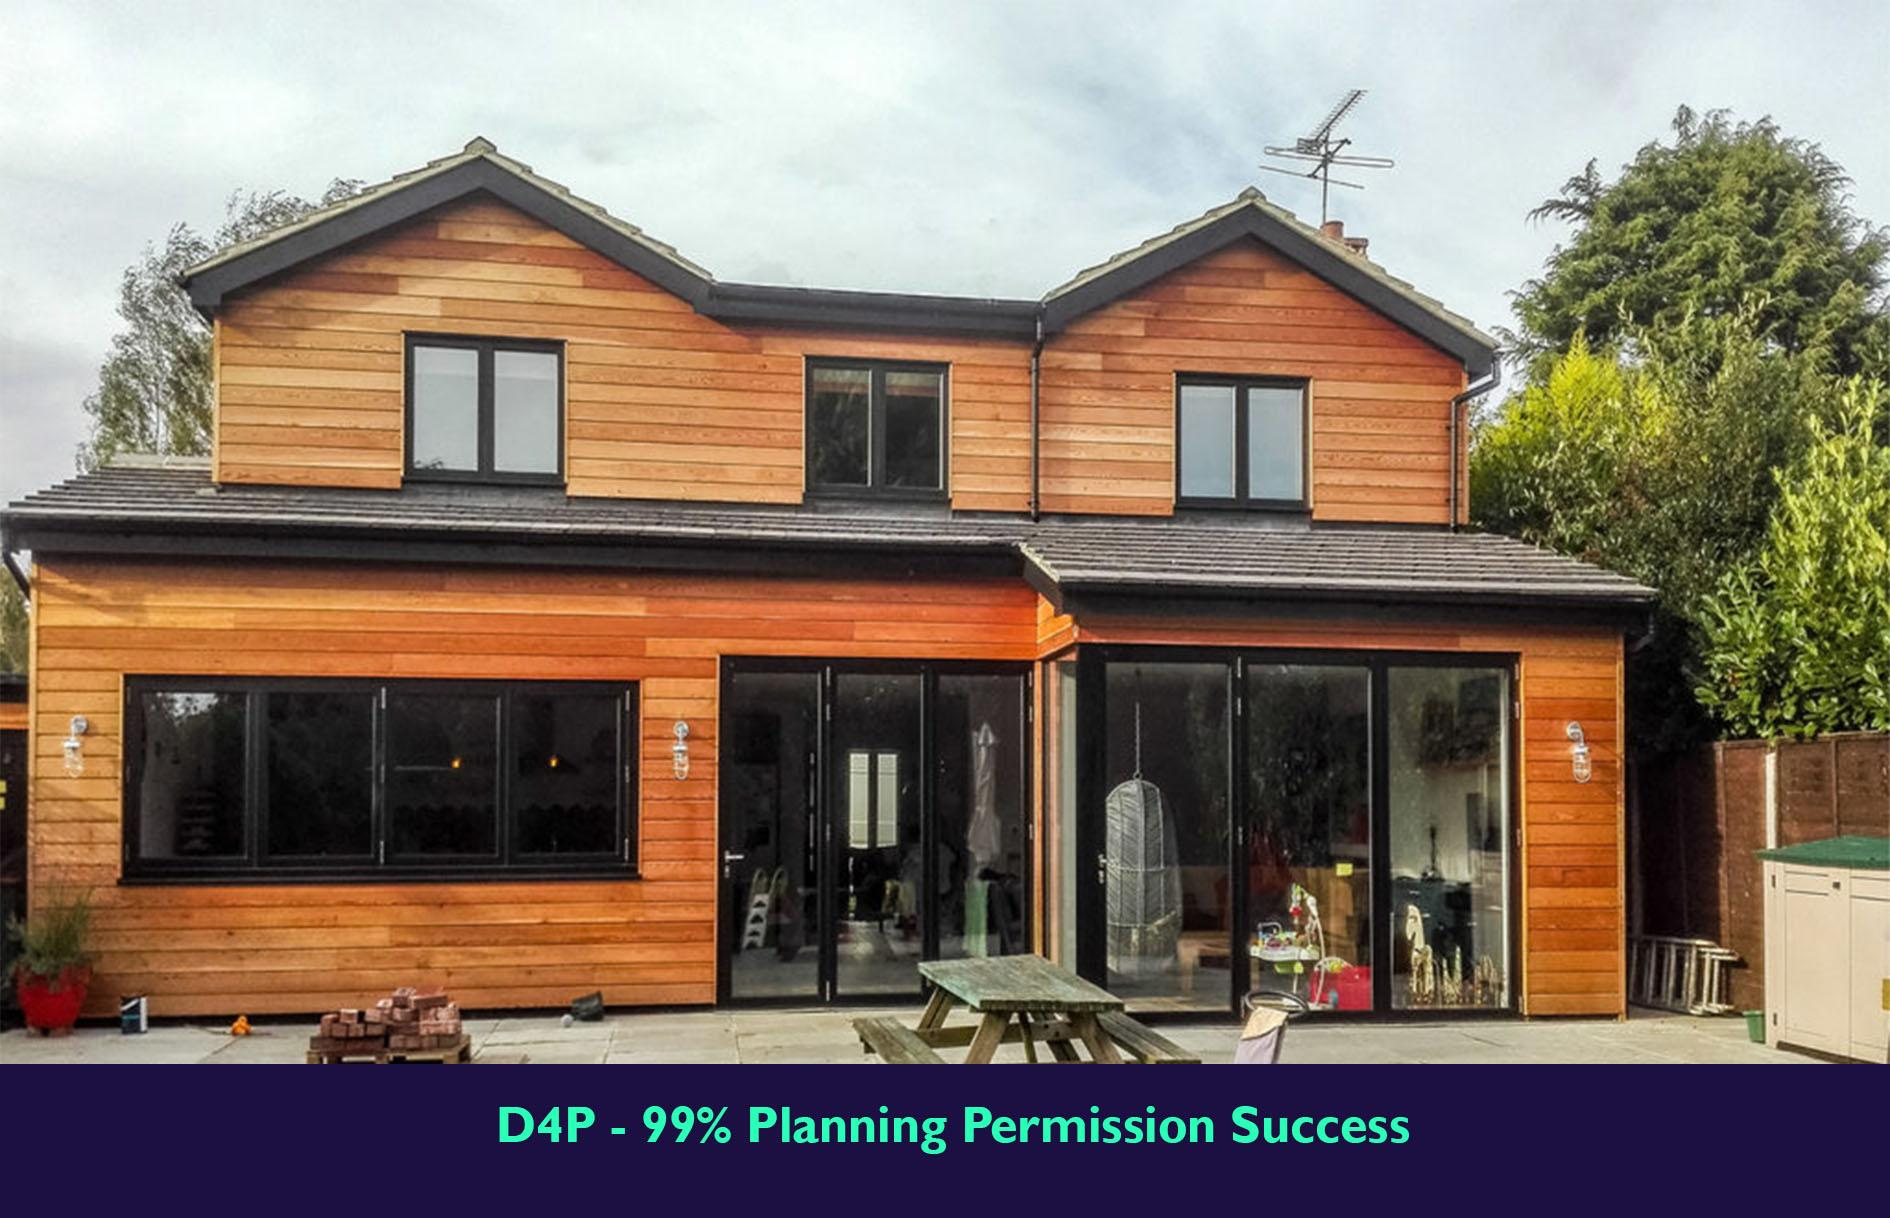 D4P Architects in London